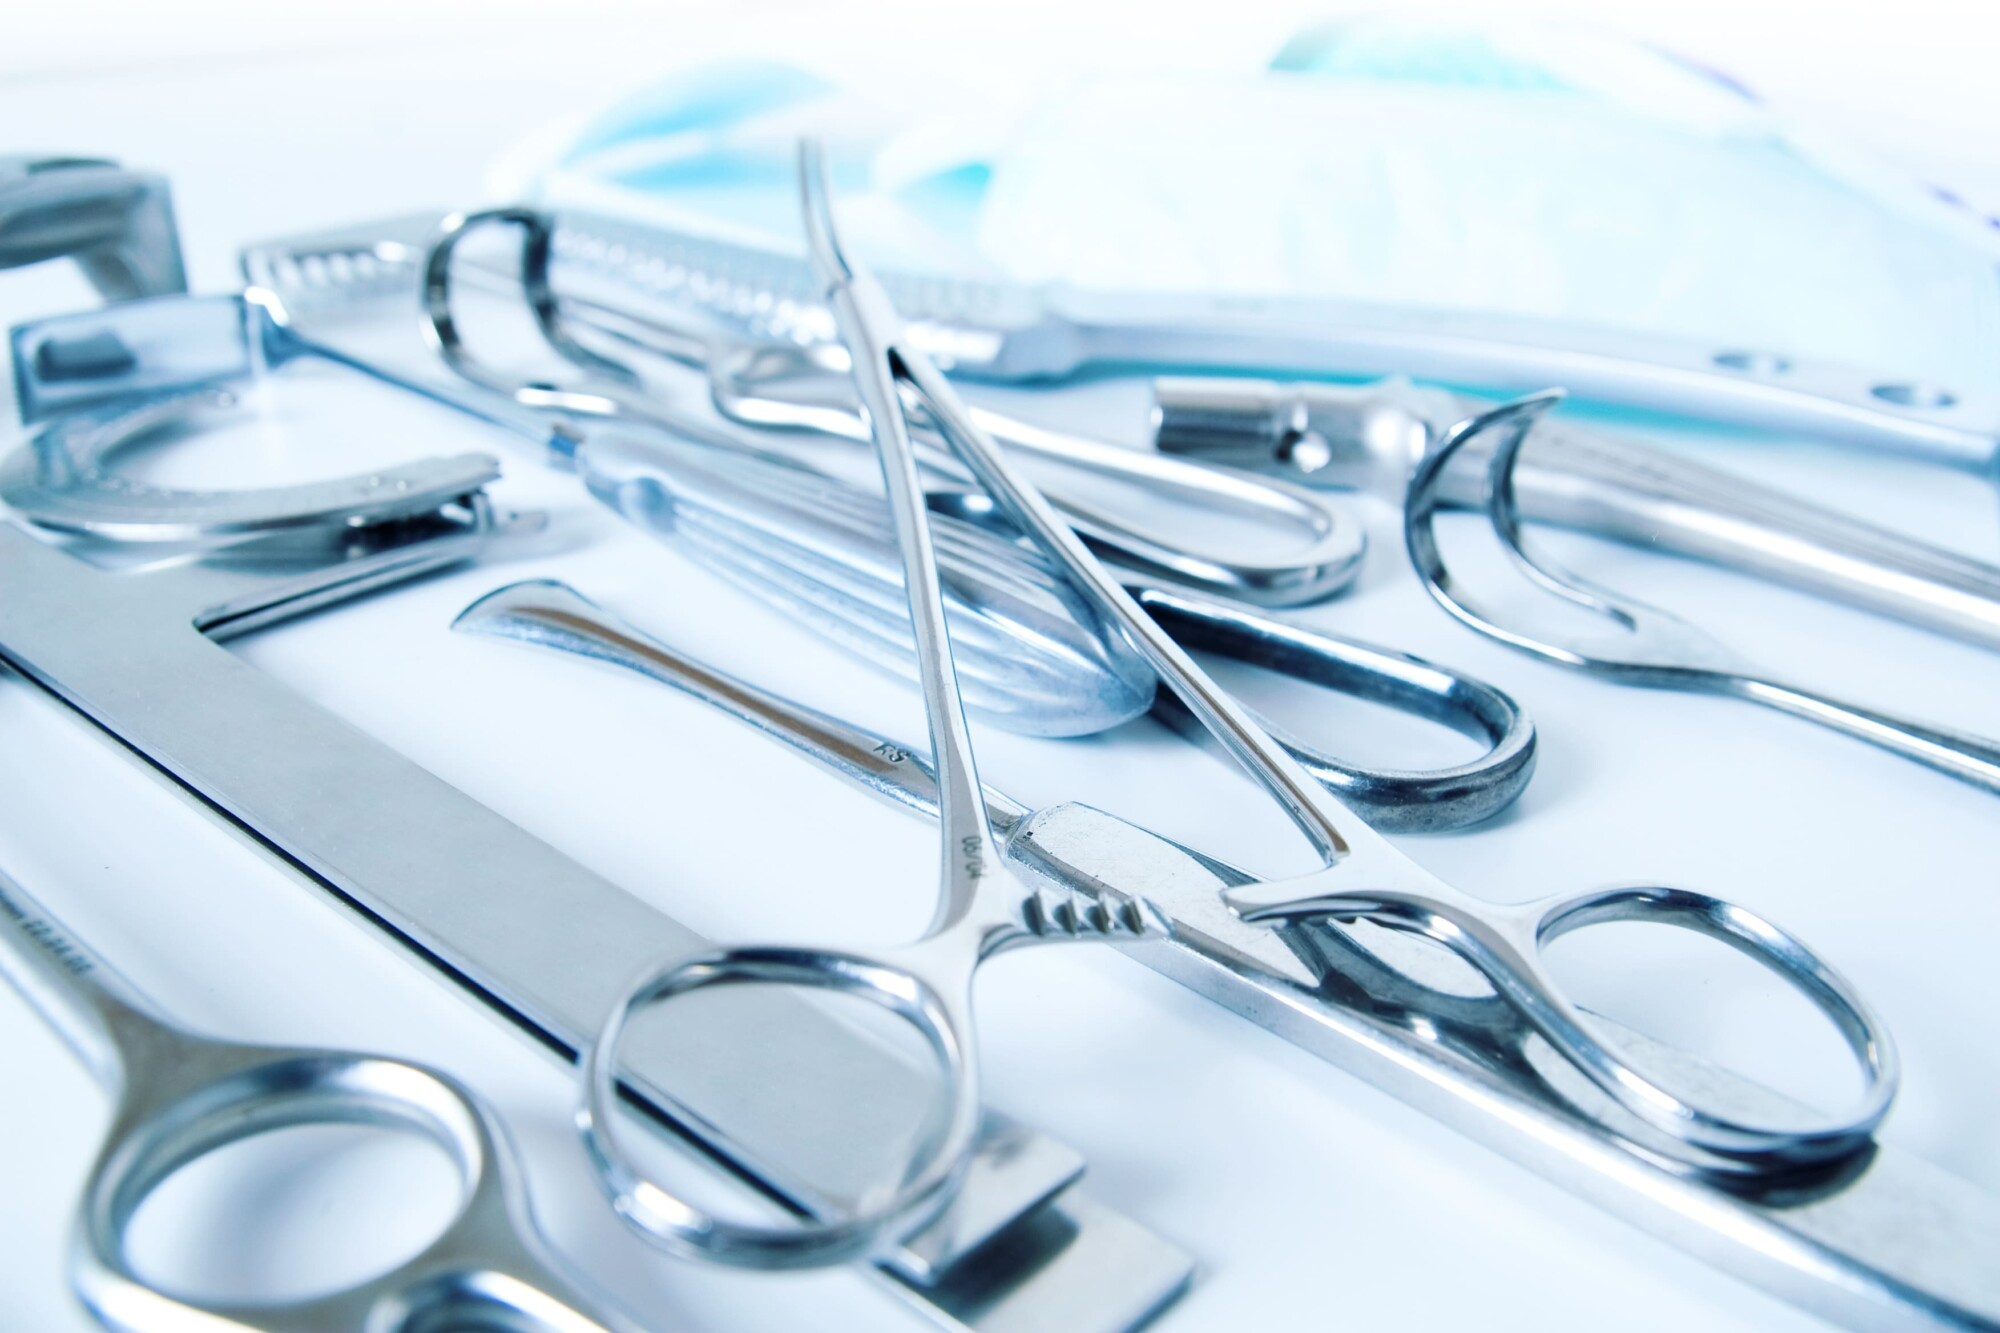 There are some significant differences between disinfection and sterilization